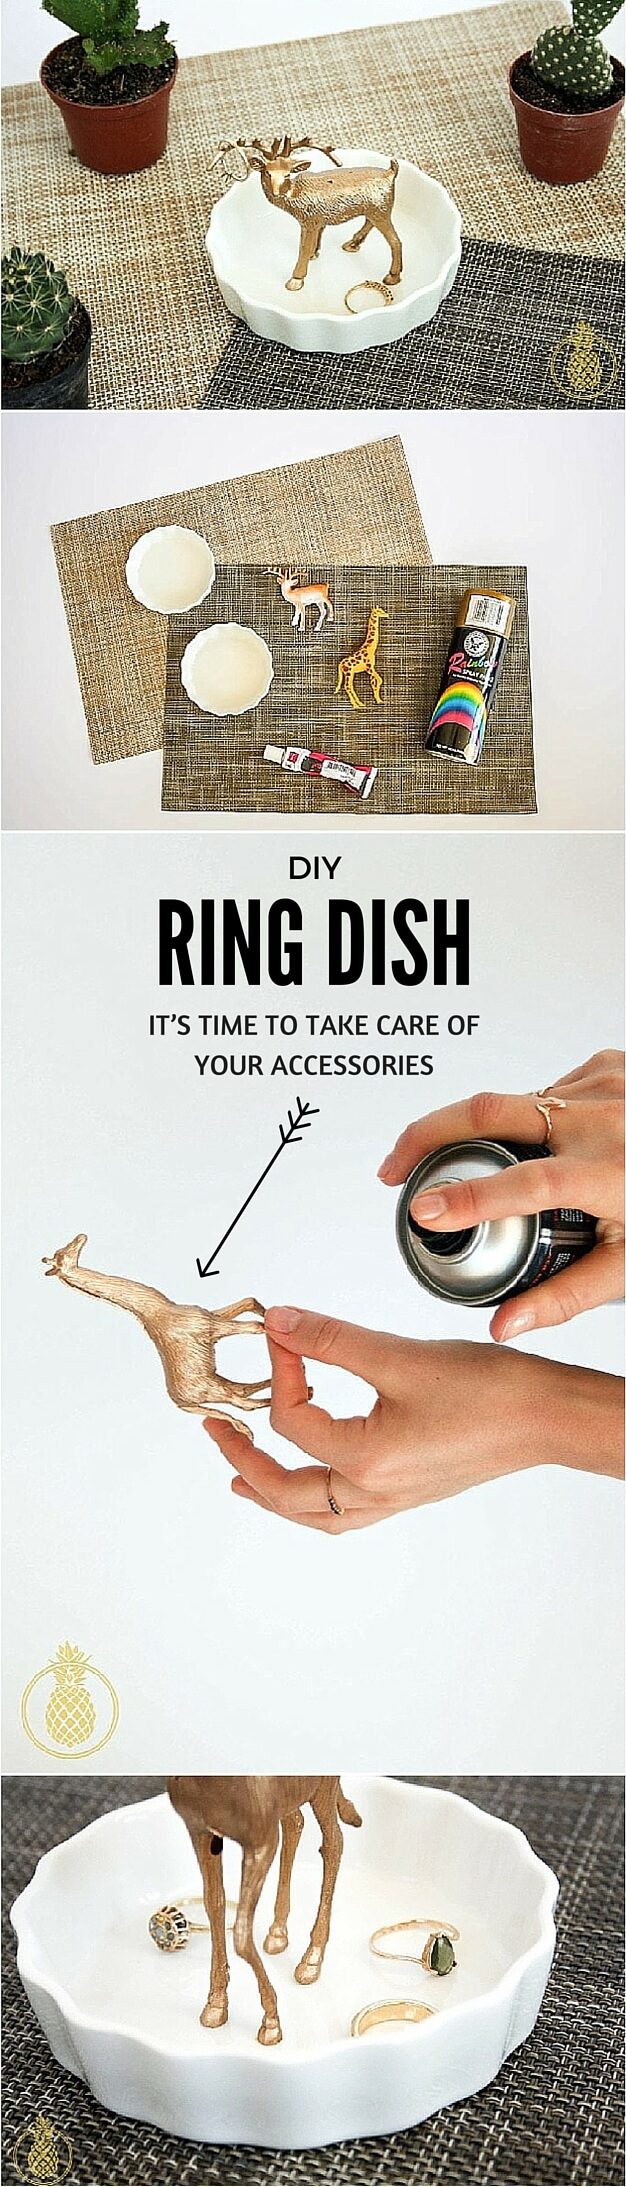 DIY Ring Dish – It's time to take care of your accessories